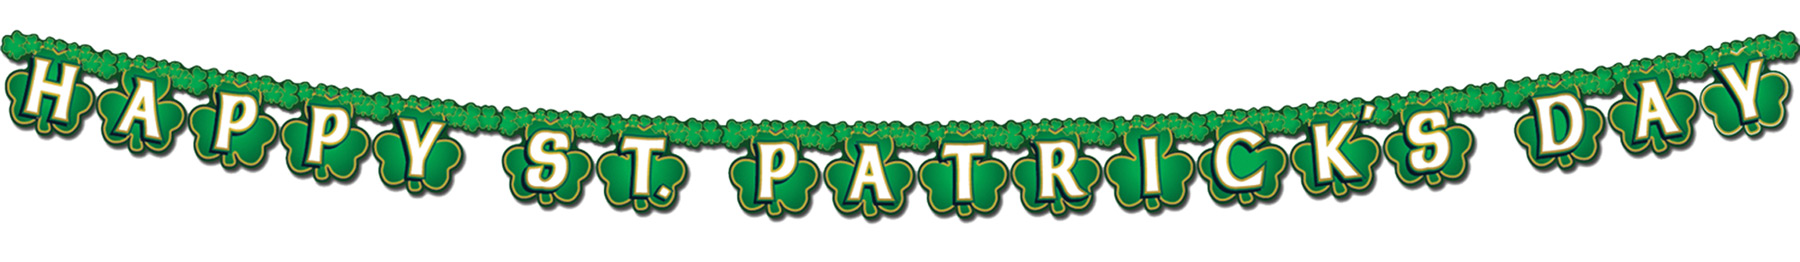 Featured Image for Shamrock Happy St. Patrick's Day